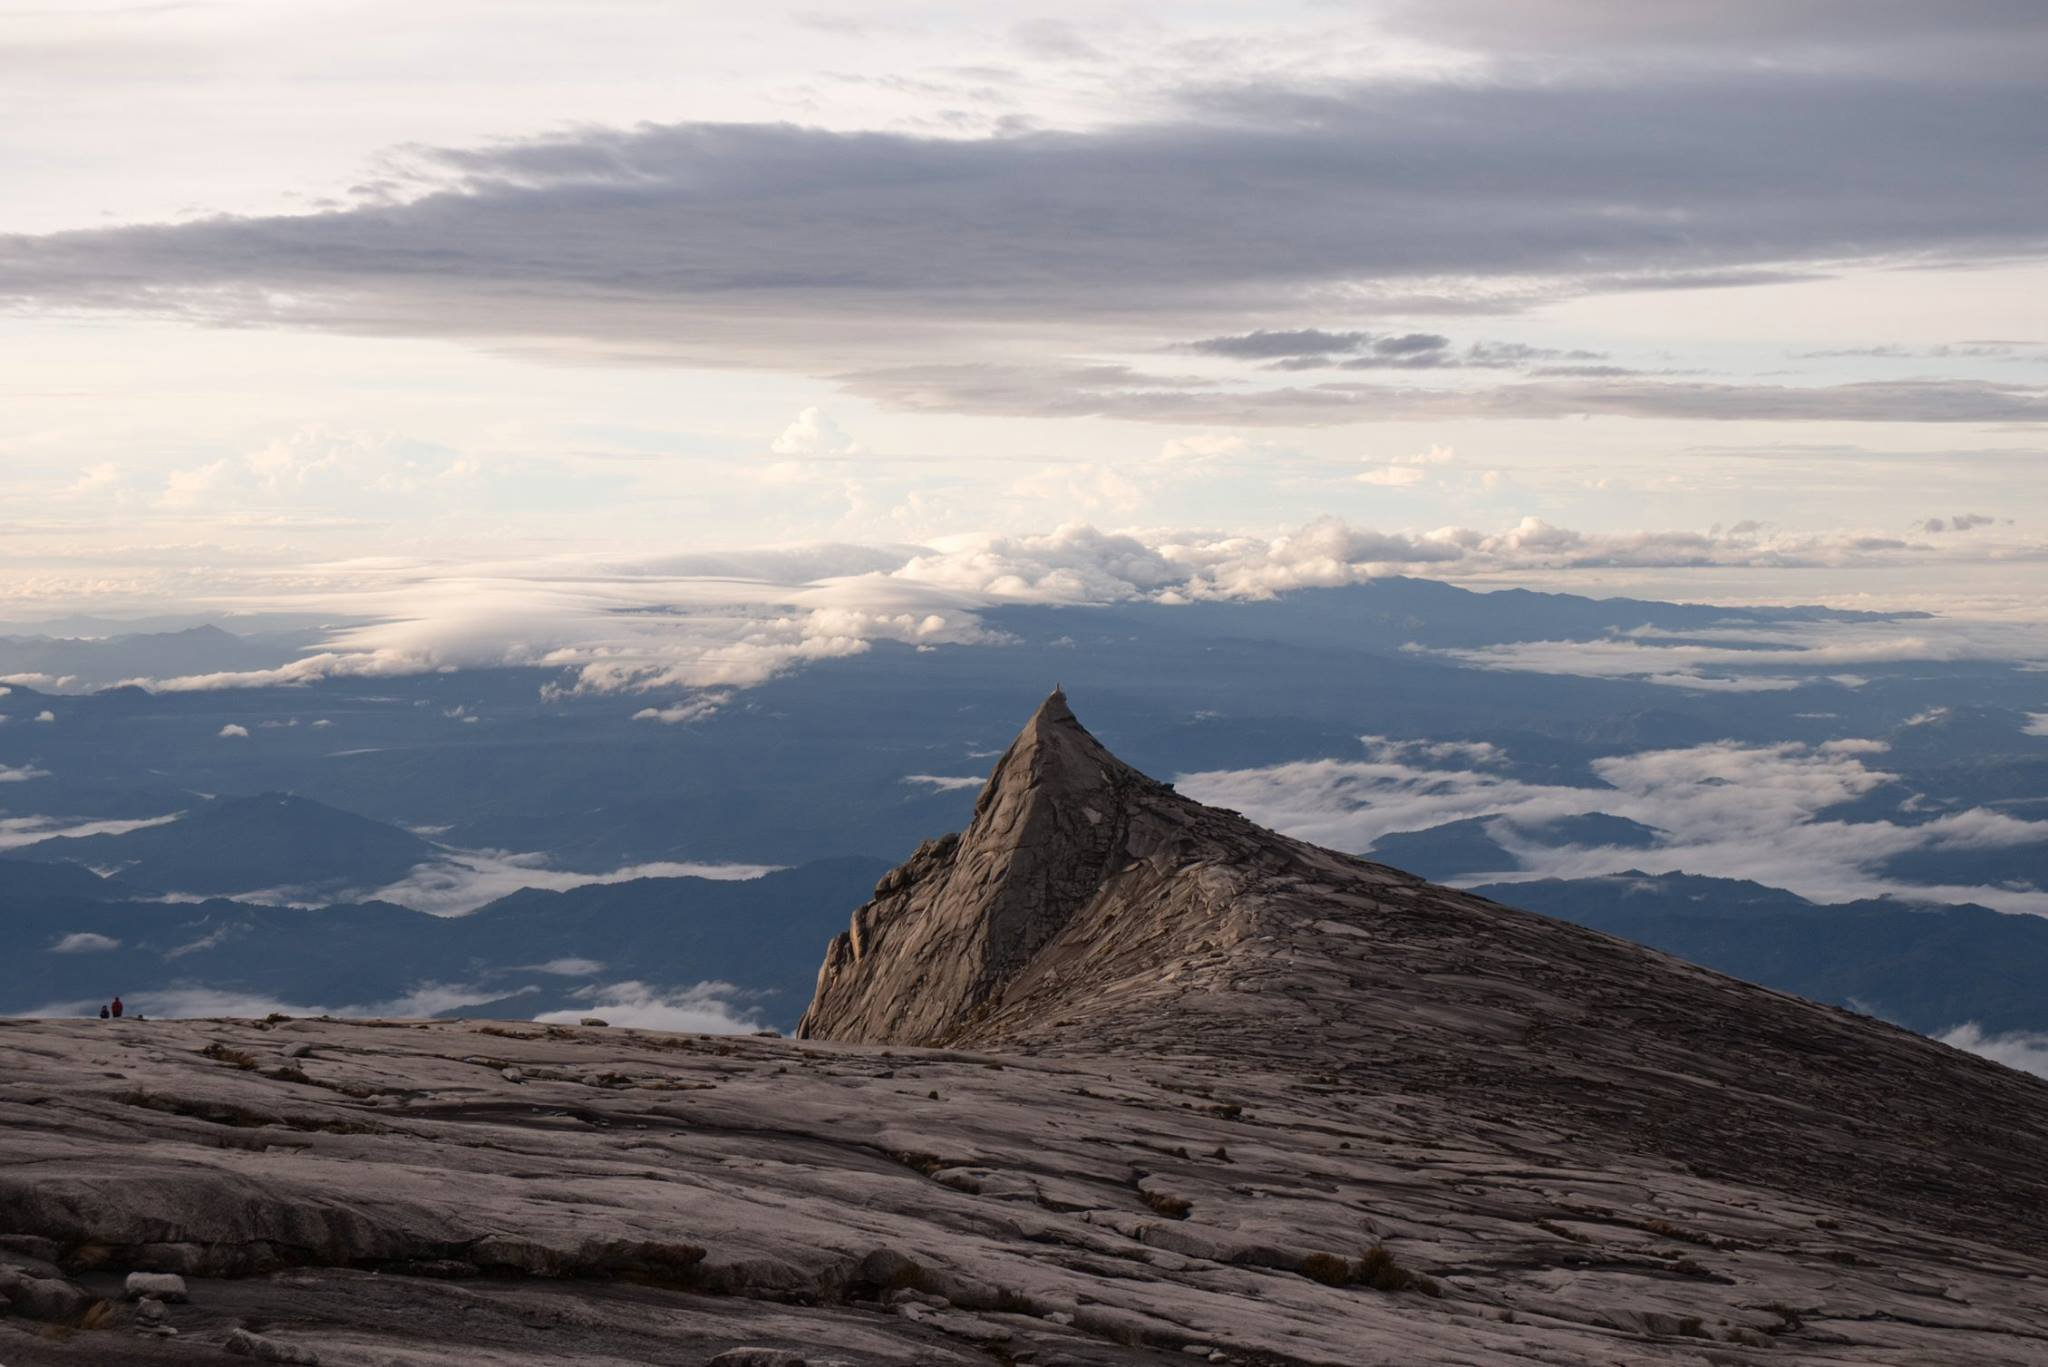 Mt. Kinabalu at sunrise